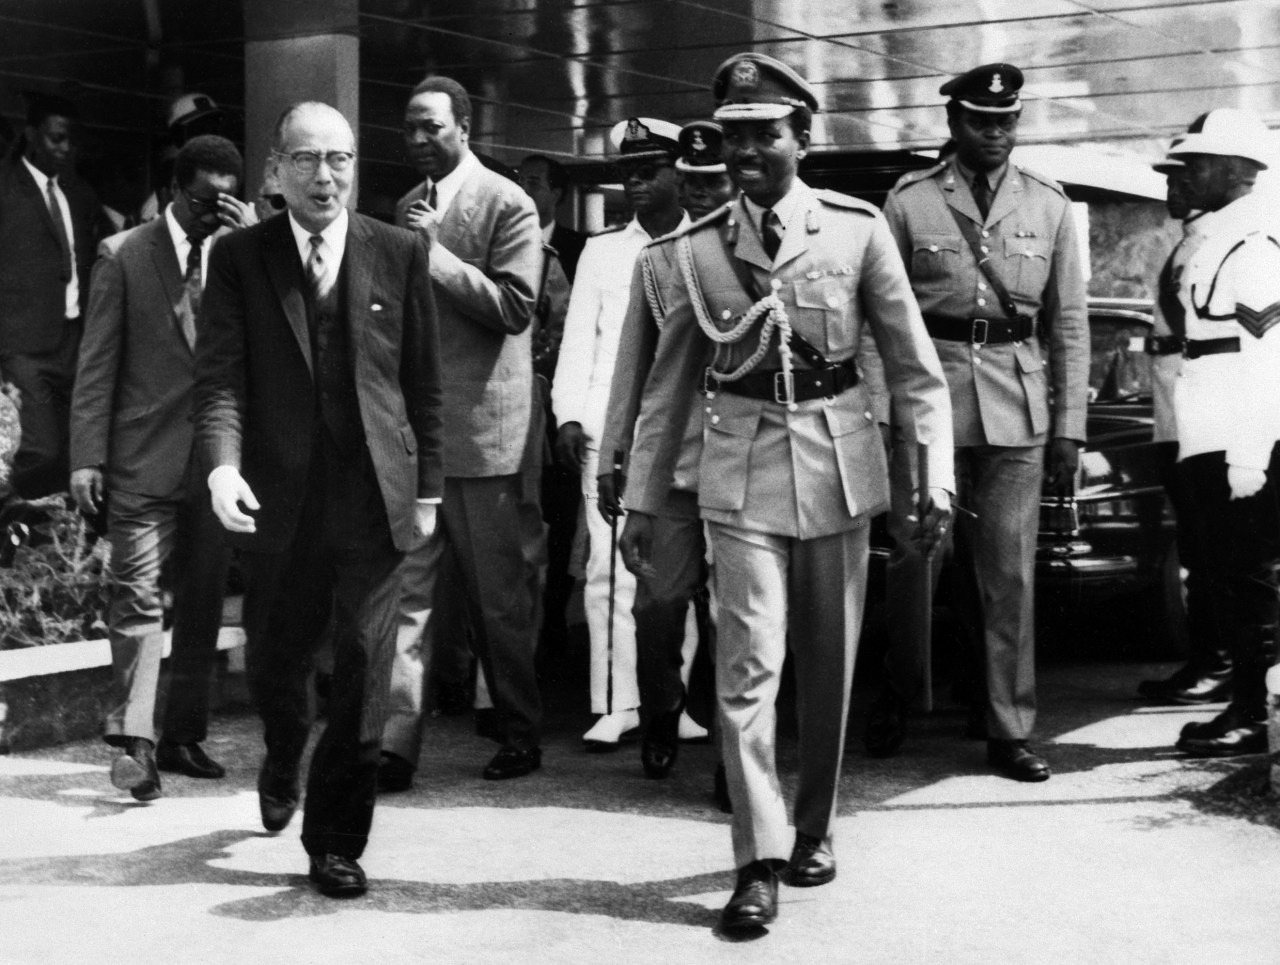 General Gowon (right) and visiting UN Secretary General U Thant (left) at Ikeja Airport on Jan. 19, 1970 during the Nigerian Civil War. (Photo by AFP via Getty Images)